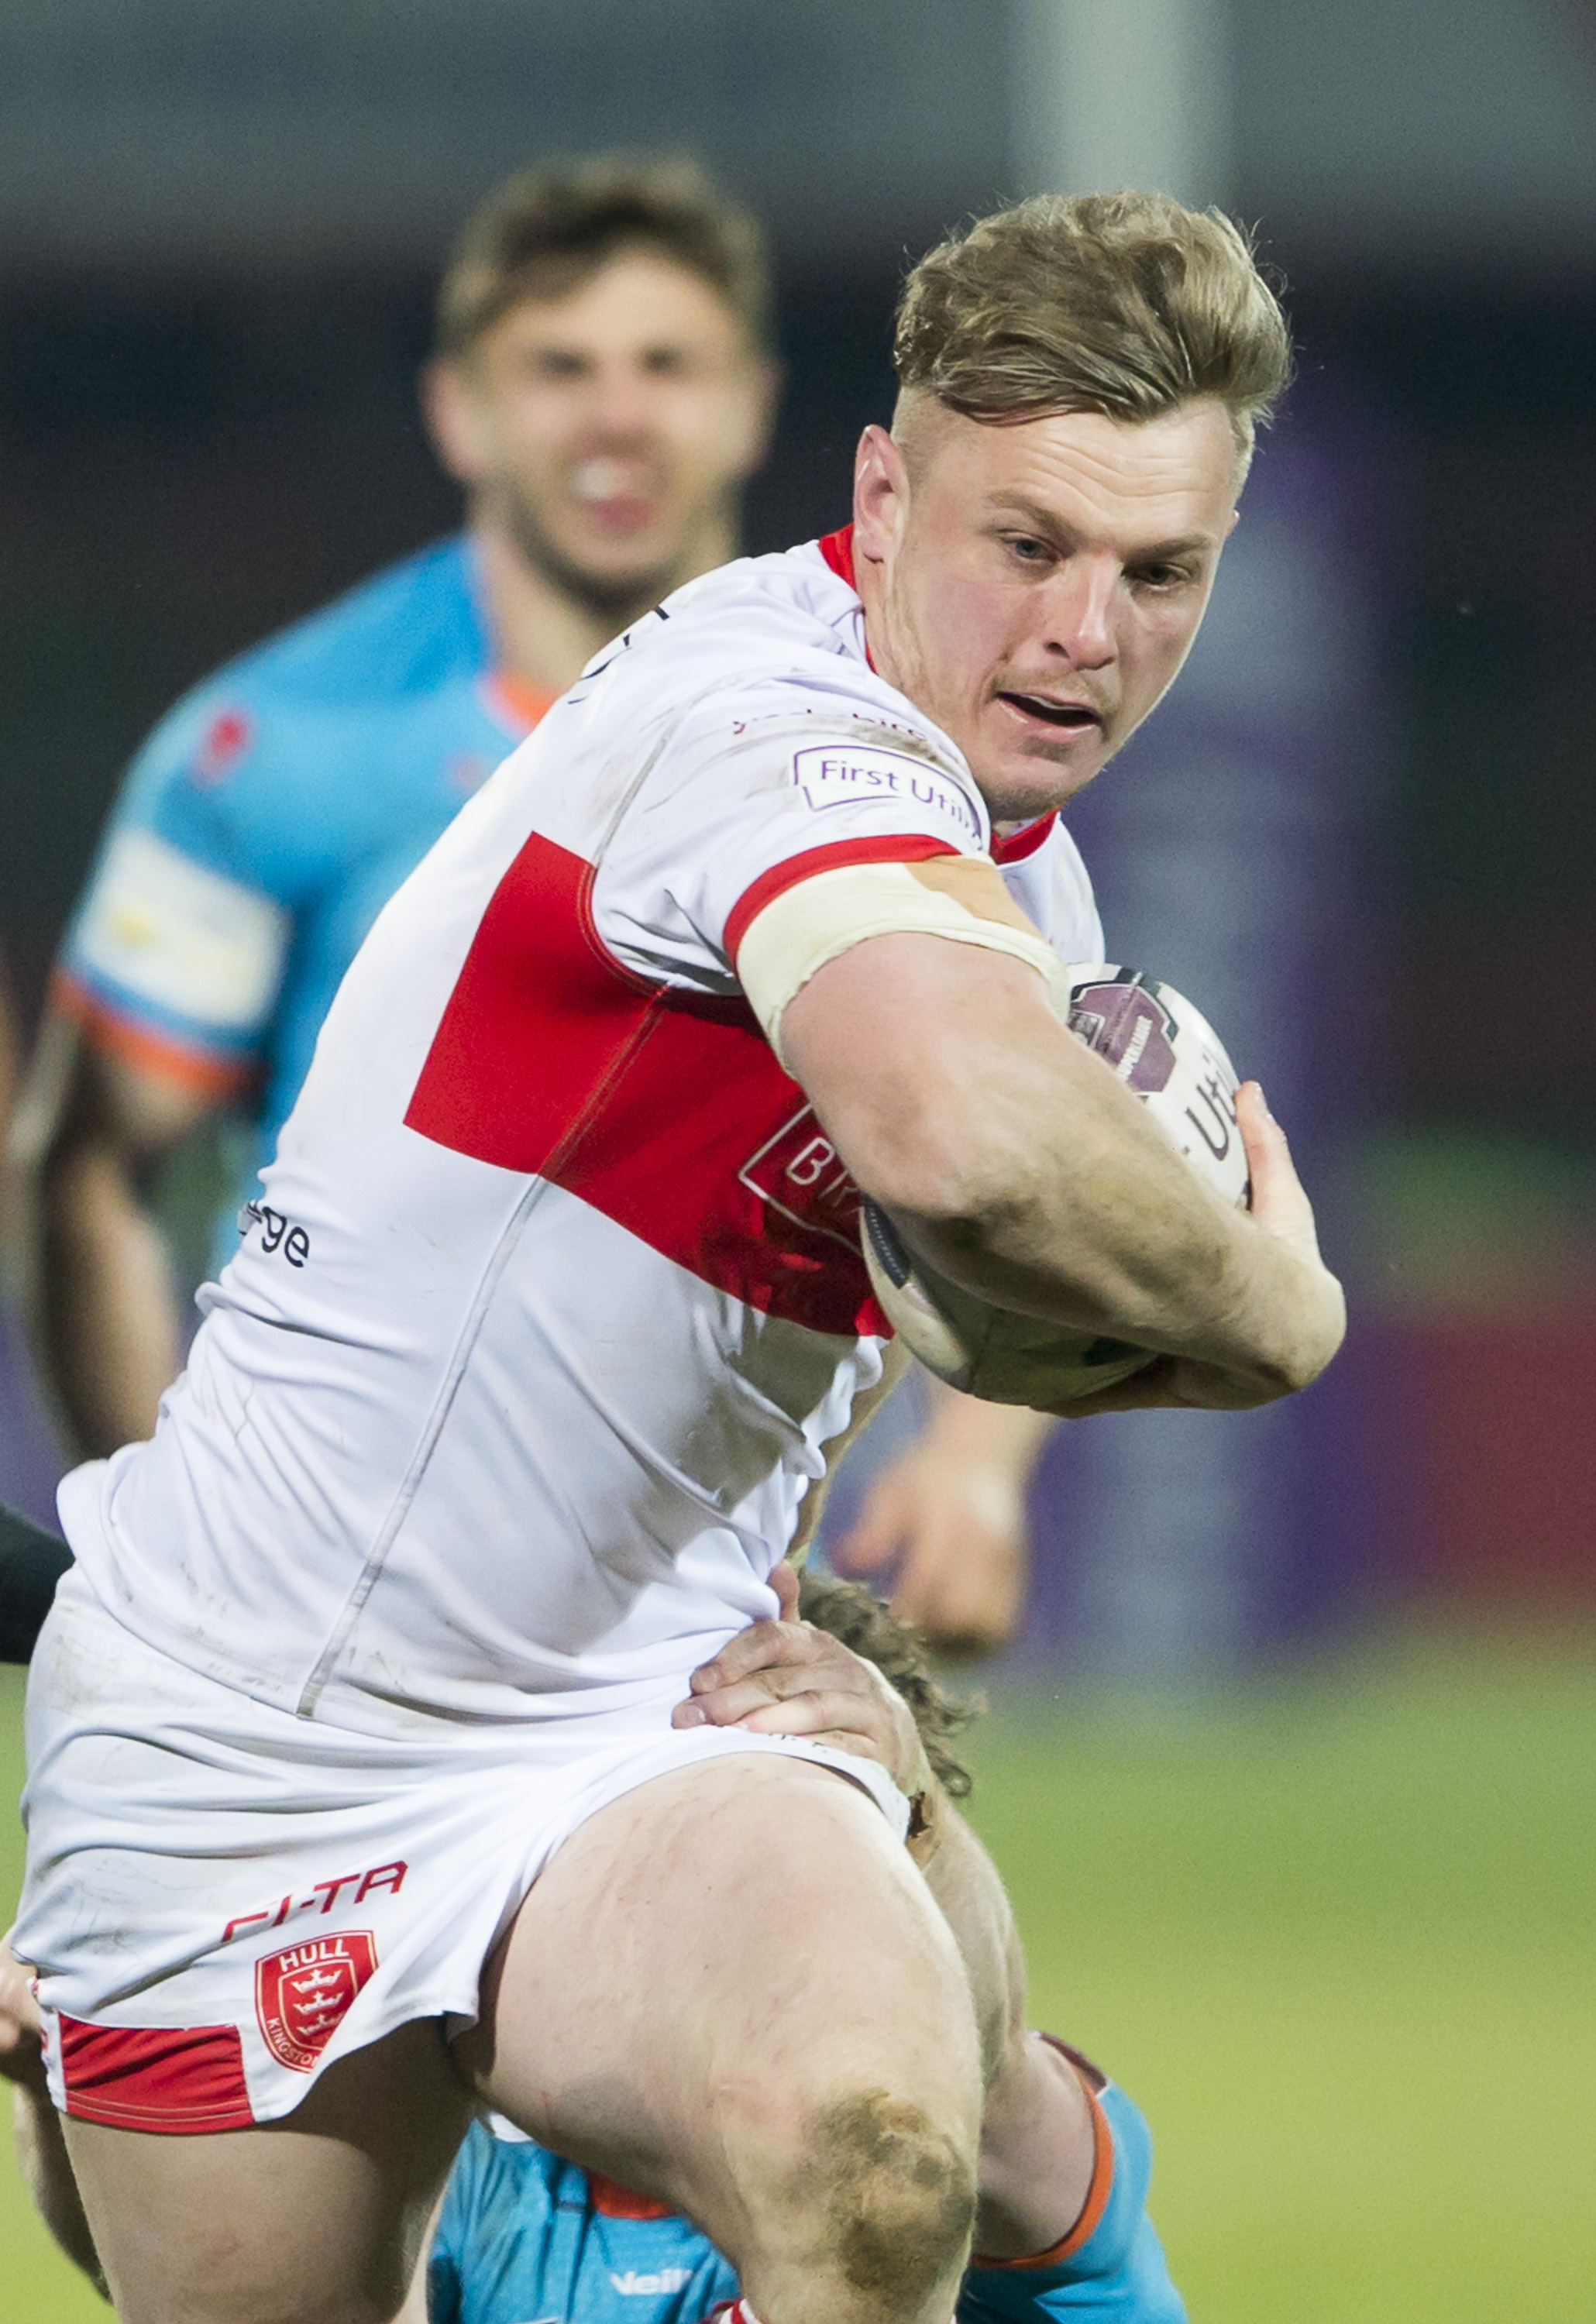 Graeme Horne in action for Hull KR Picture: SWPix